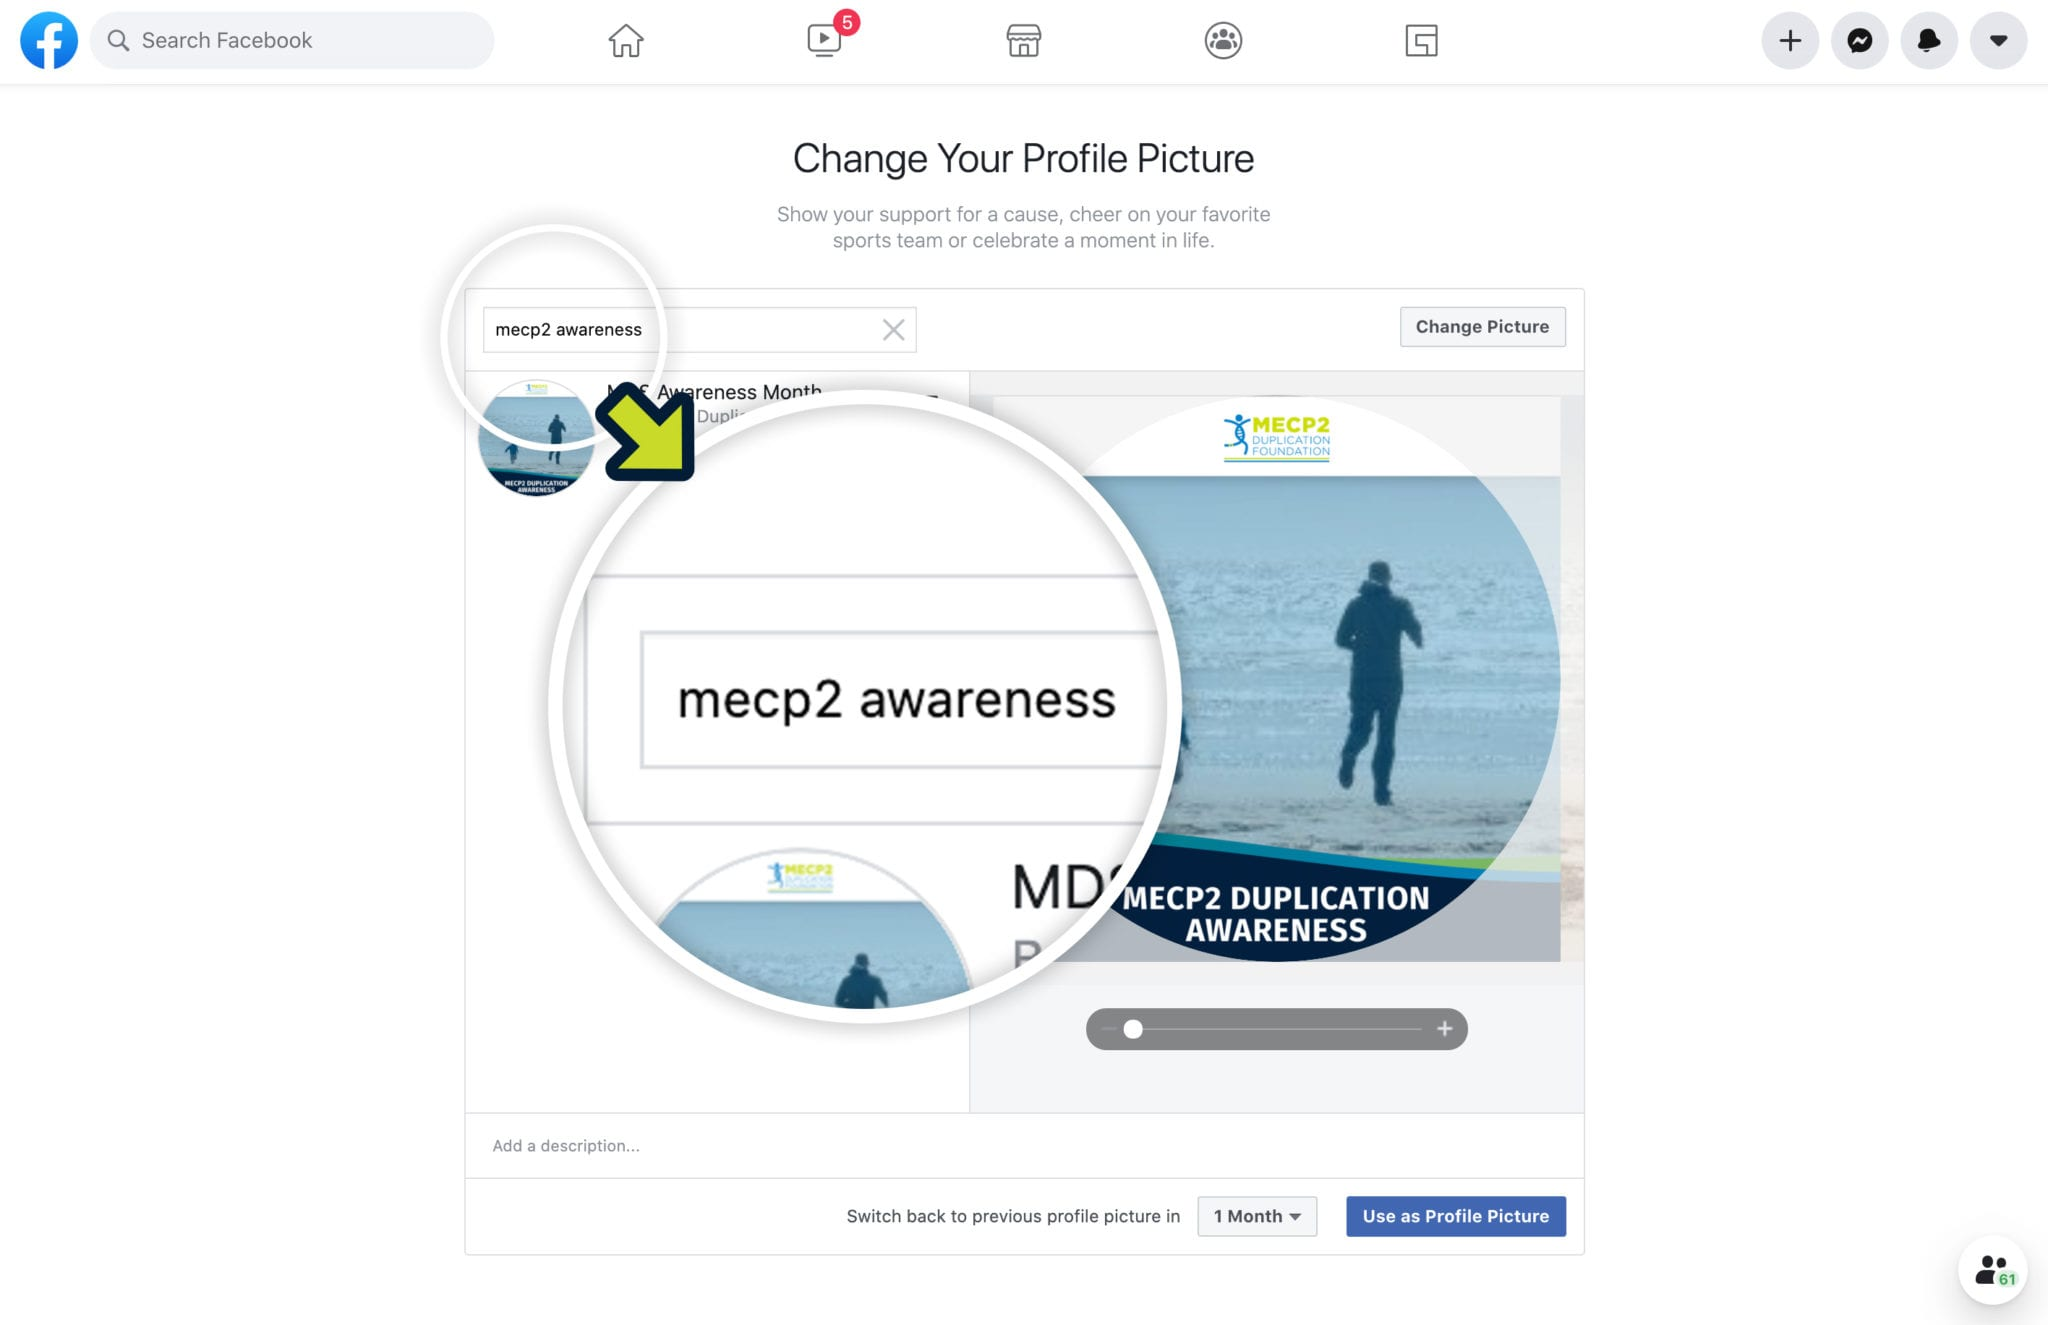 visual instructions for adding MECP2 duplication awareness facebook frame